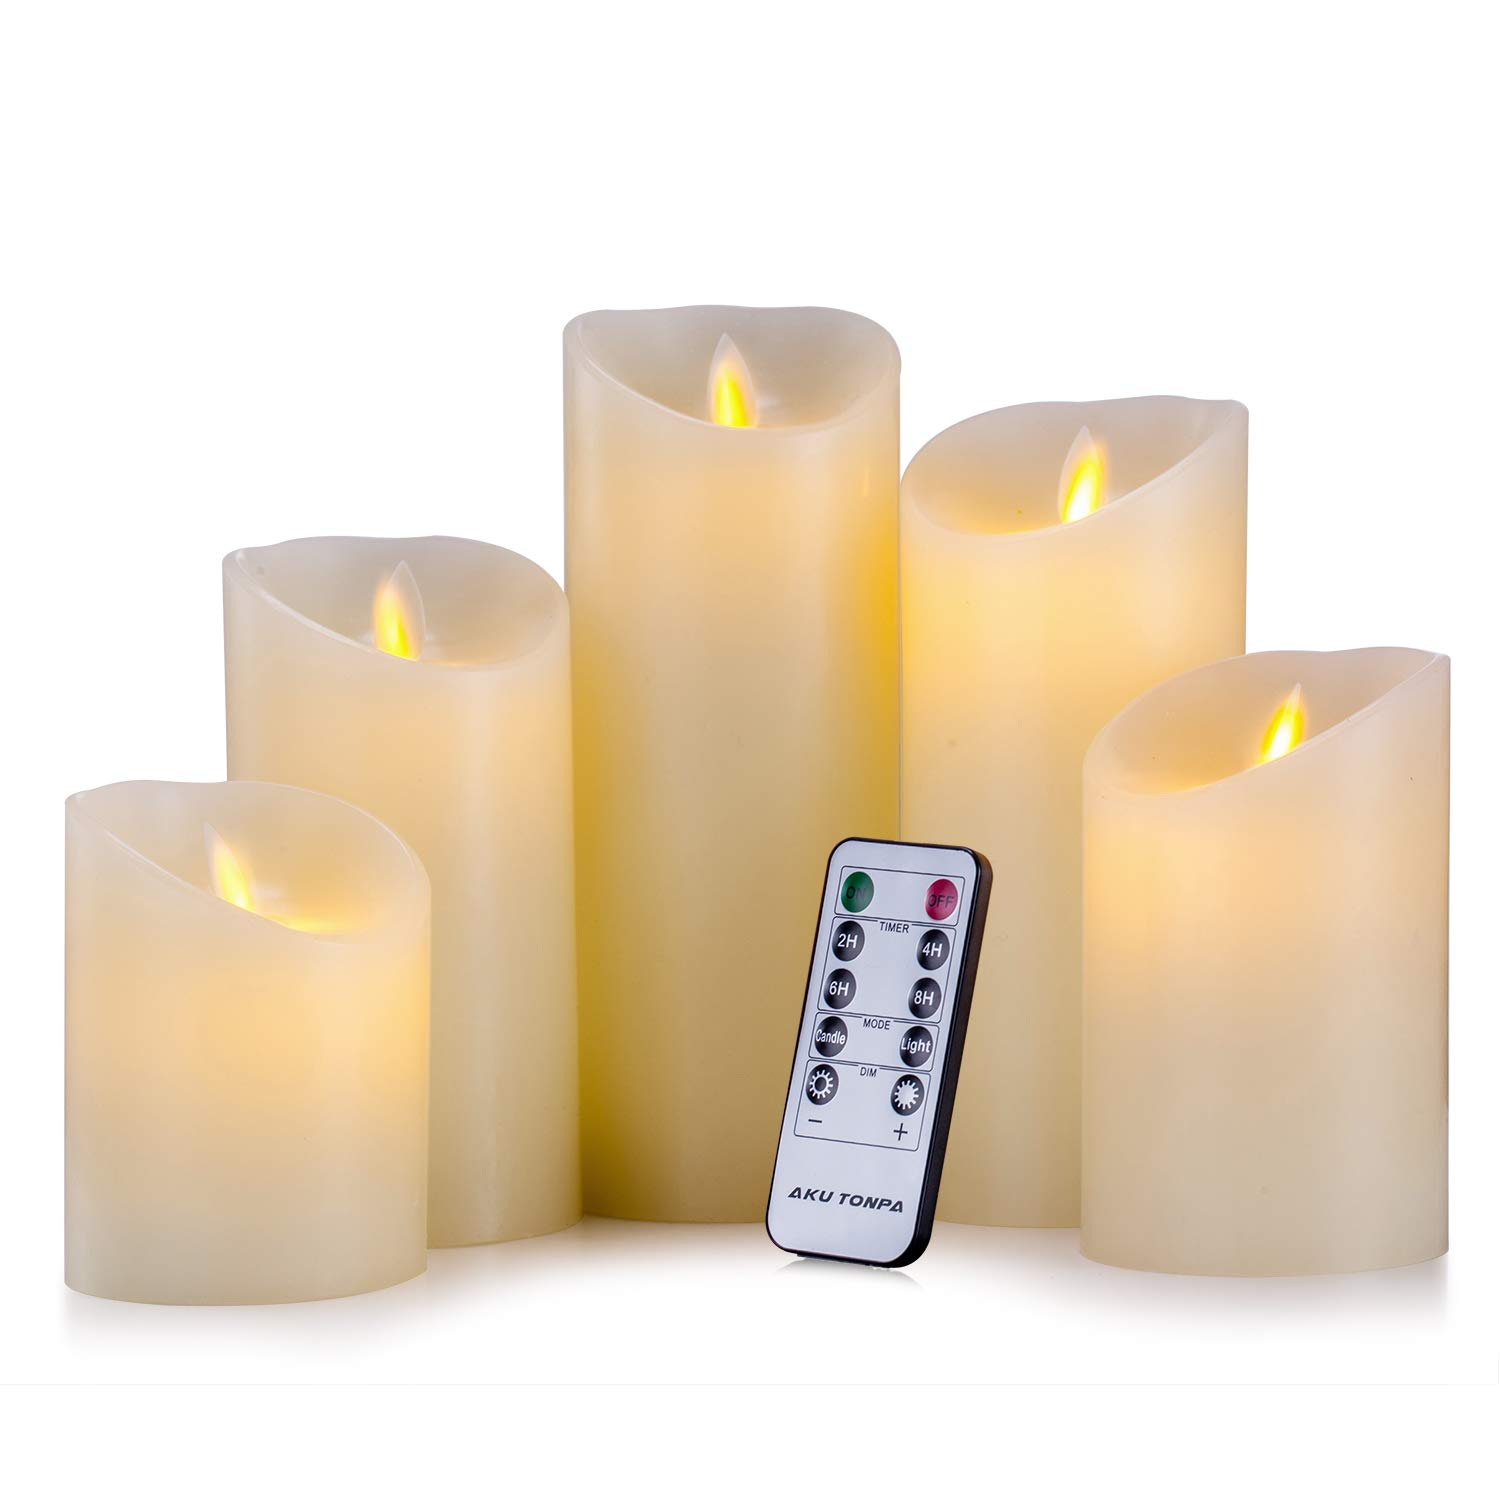 Aku Tonpa Flameless Candles Battery Operated Pillar Real Wax Flickering Moving Wick Electric LED Candle Gift Set with Remote Control Cycling 24 Hours Timer, Pack of 5 (H:4'' 5'' 6'' 7'' 8'')